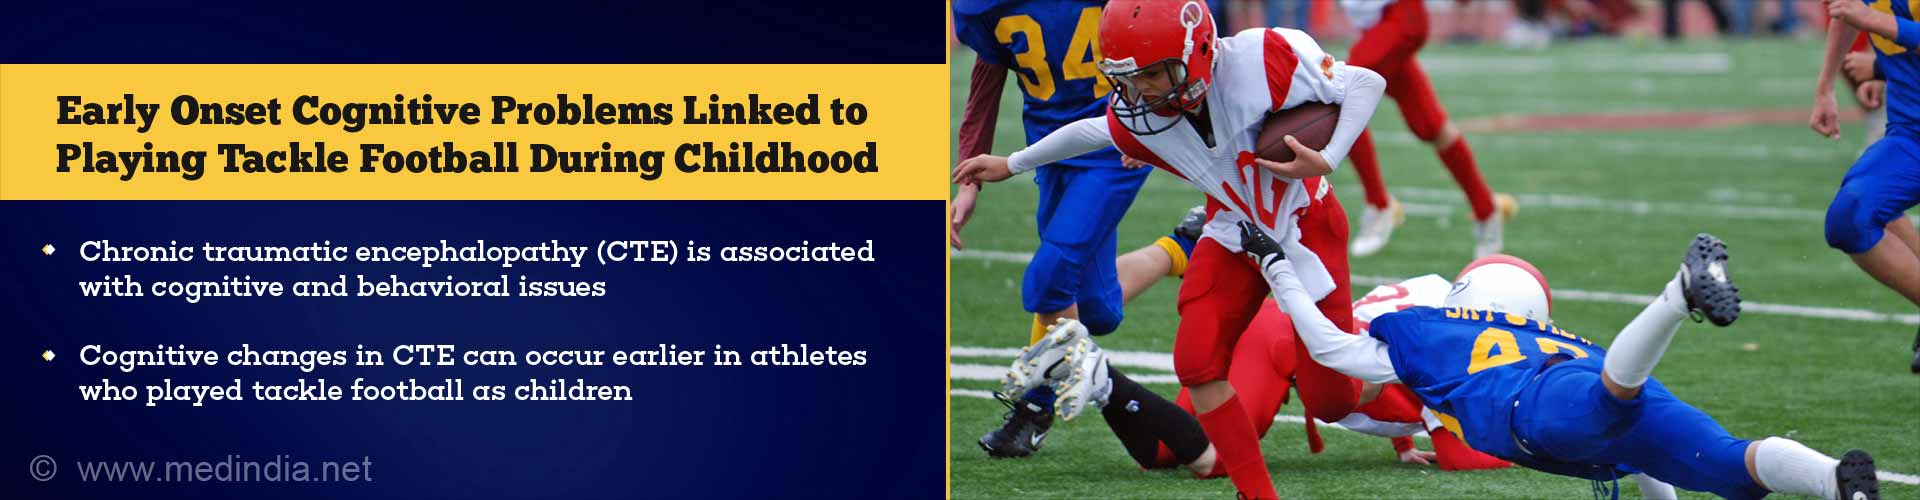 Playing Tackle Football in Childhood Linked to Early Onset of Cognitive Impairment